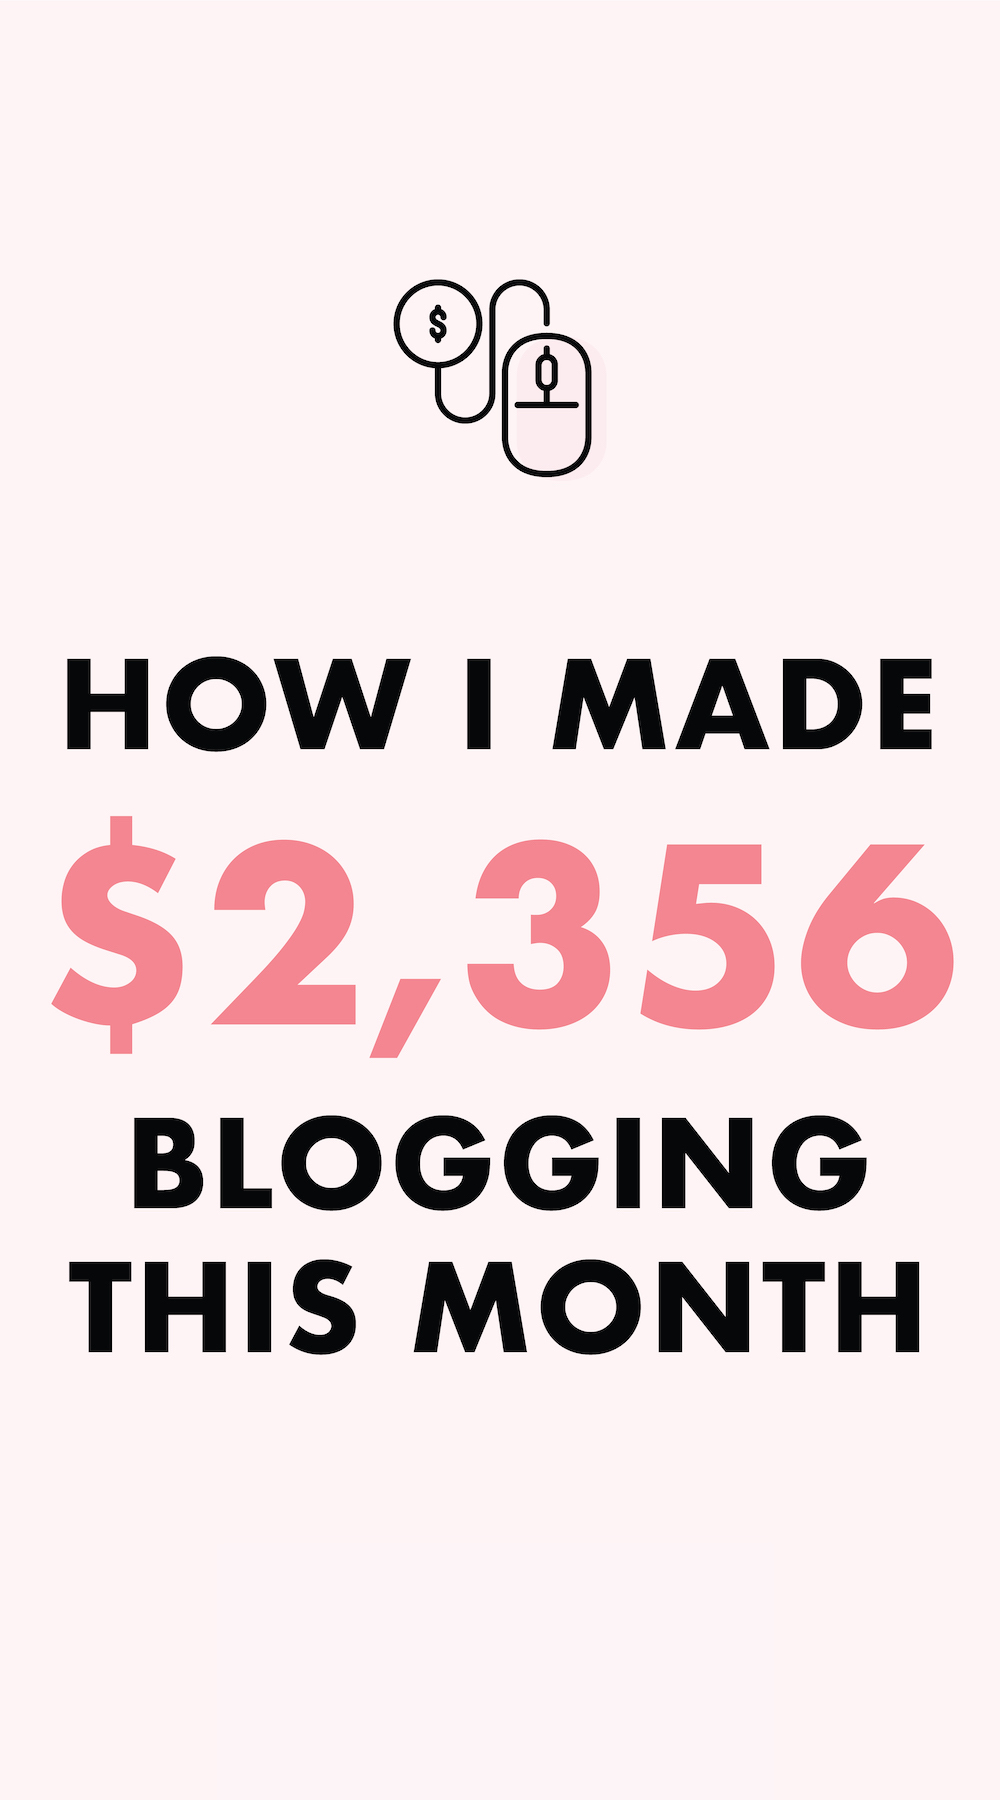 How I Made $2k Online This Month - October 2017